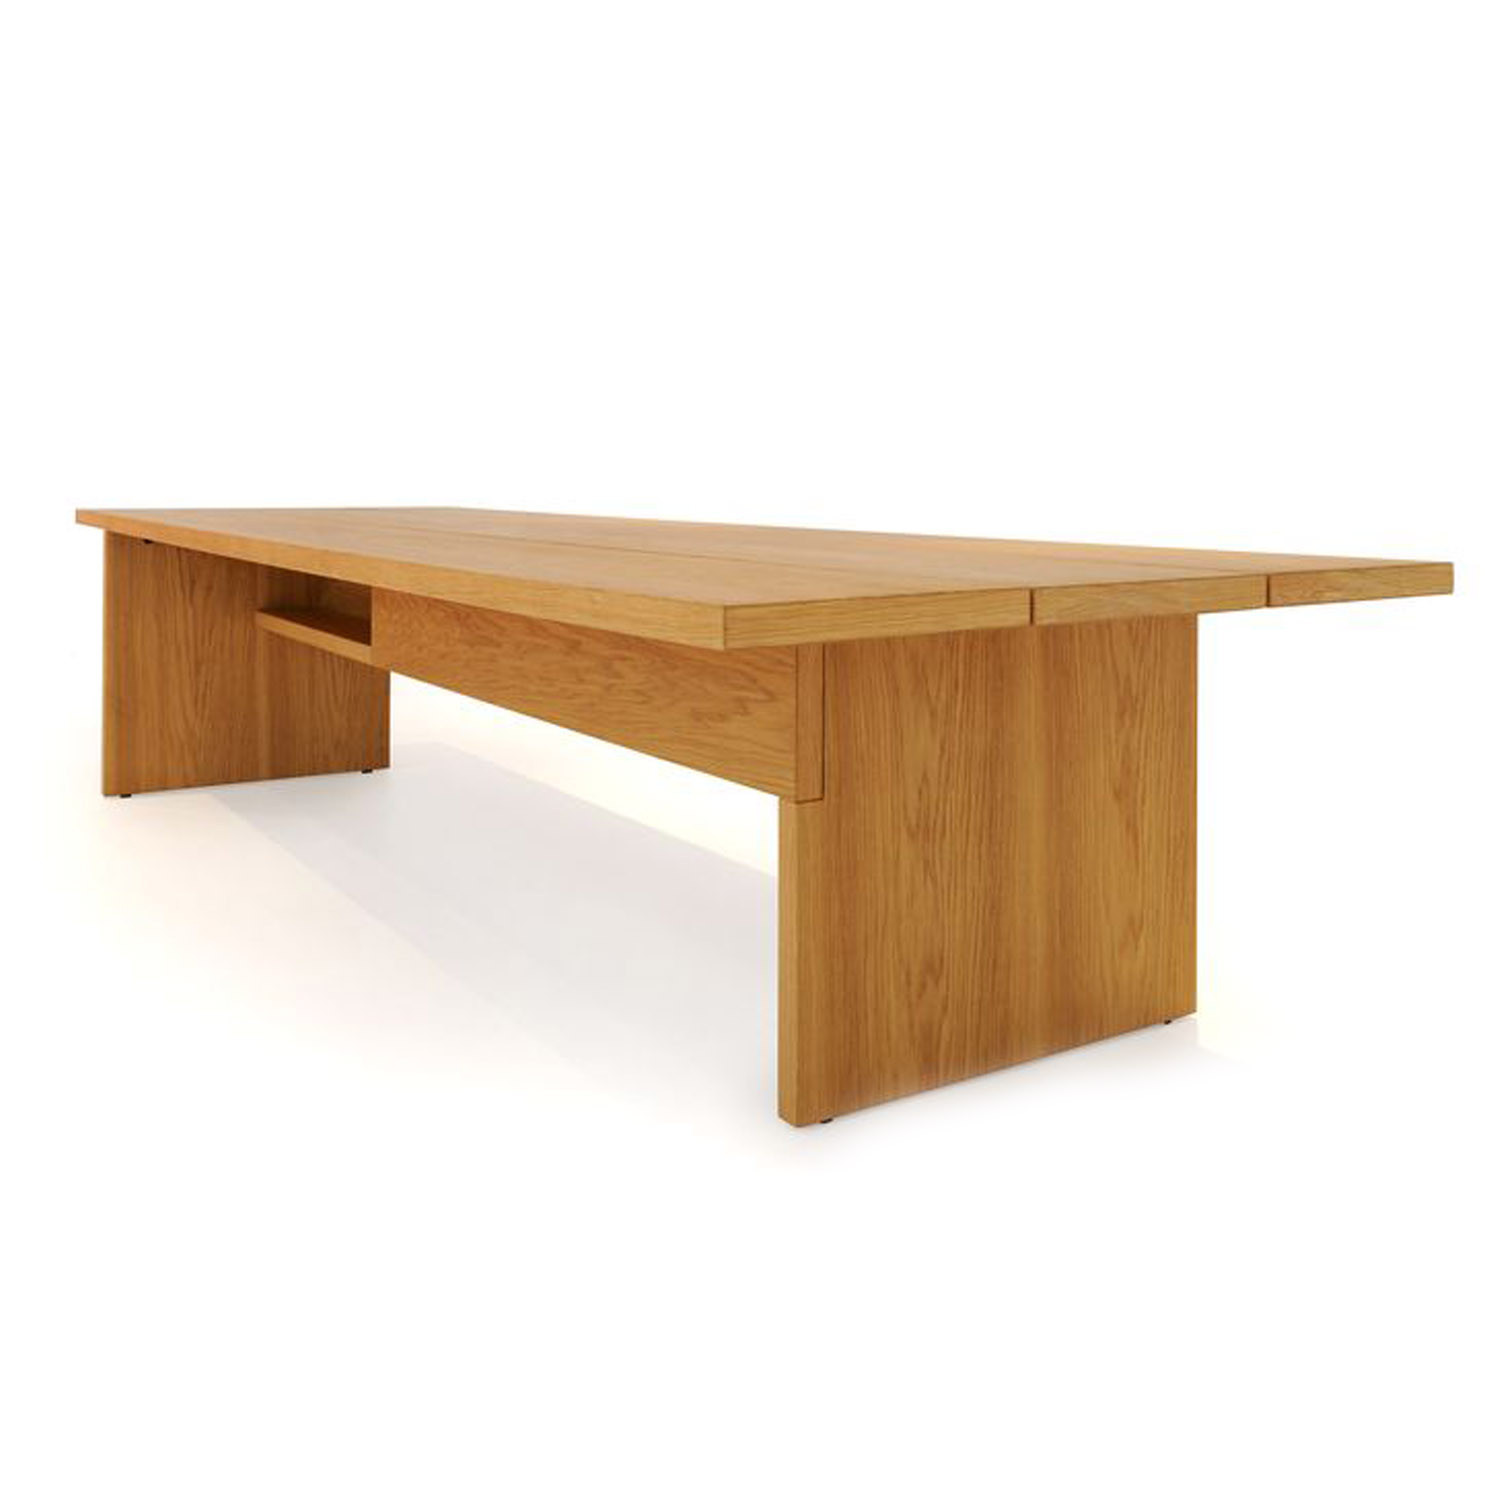 Bataille ibens Twin Meeting Table